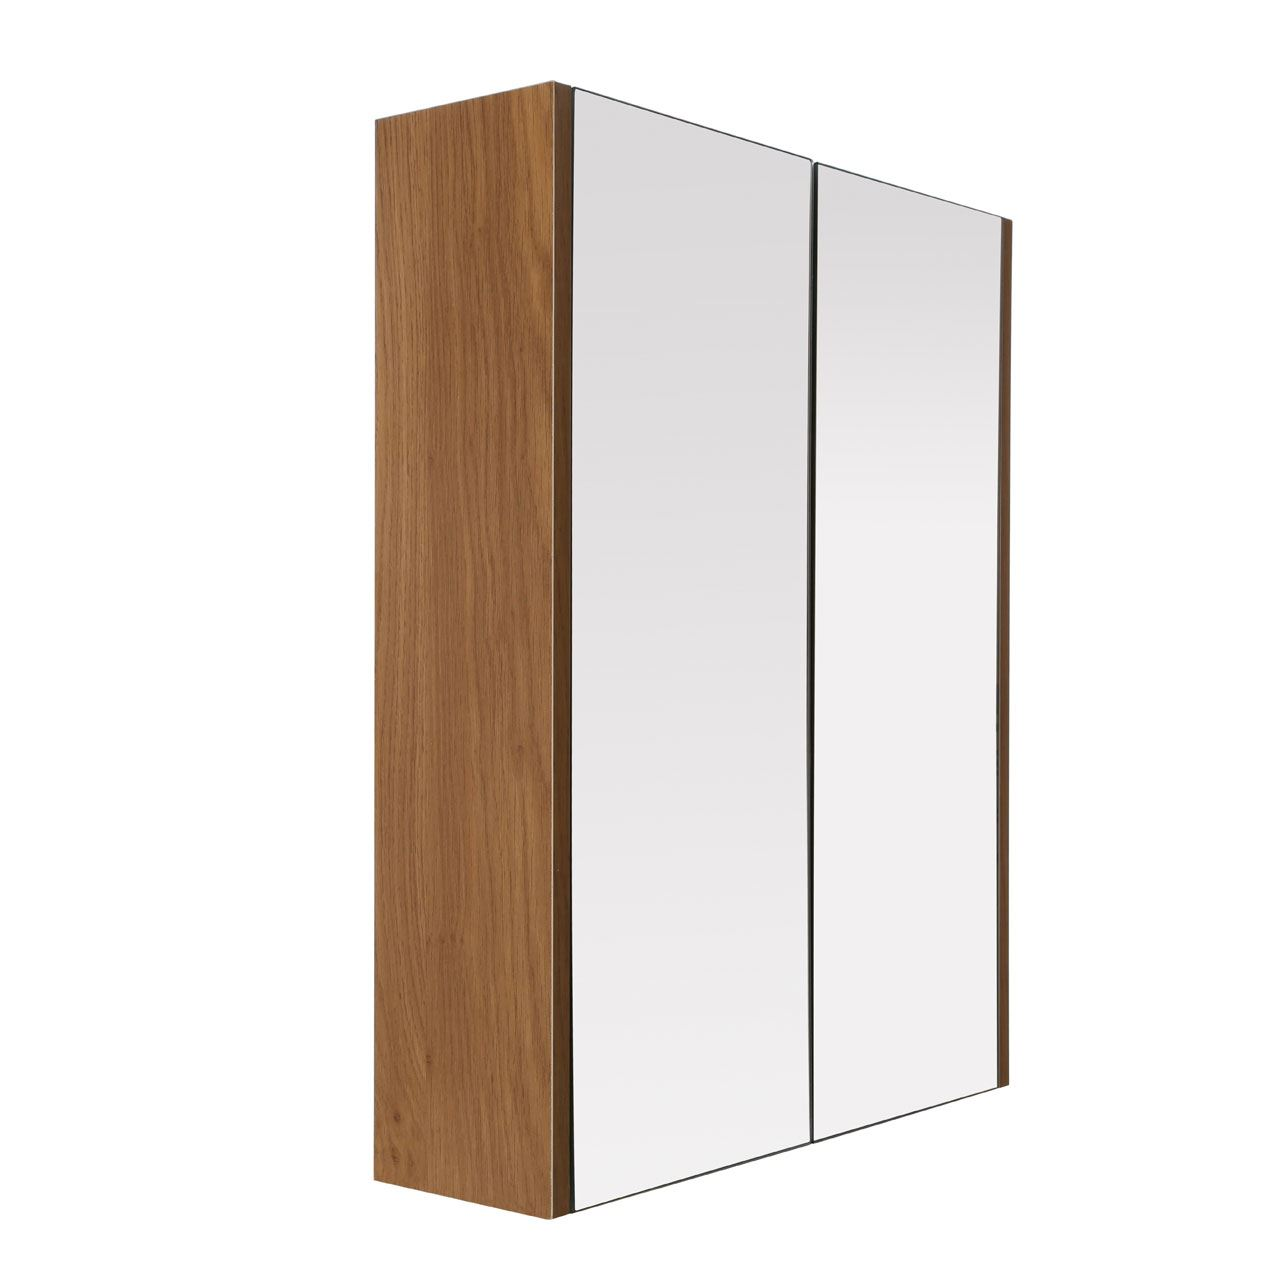 Oak Effect Kitchen Cabinets: Premier Housewares Wall Cabinet, 2 Door, Oak Effect/Mirror